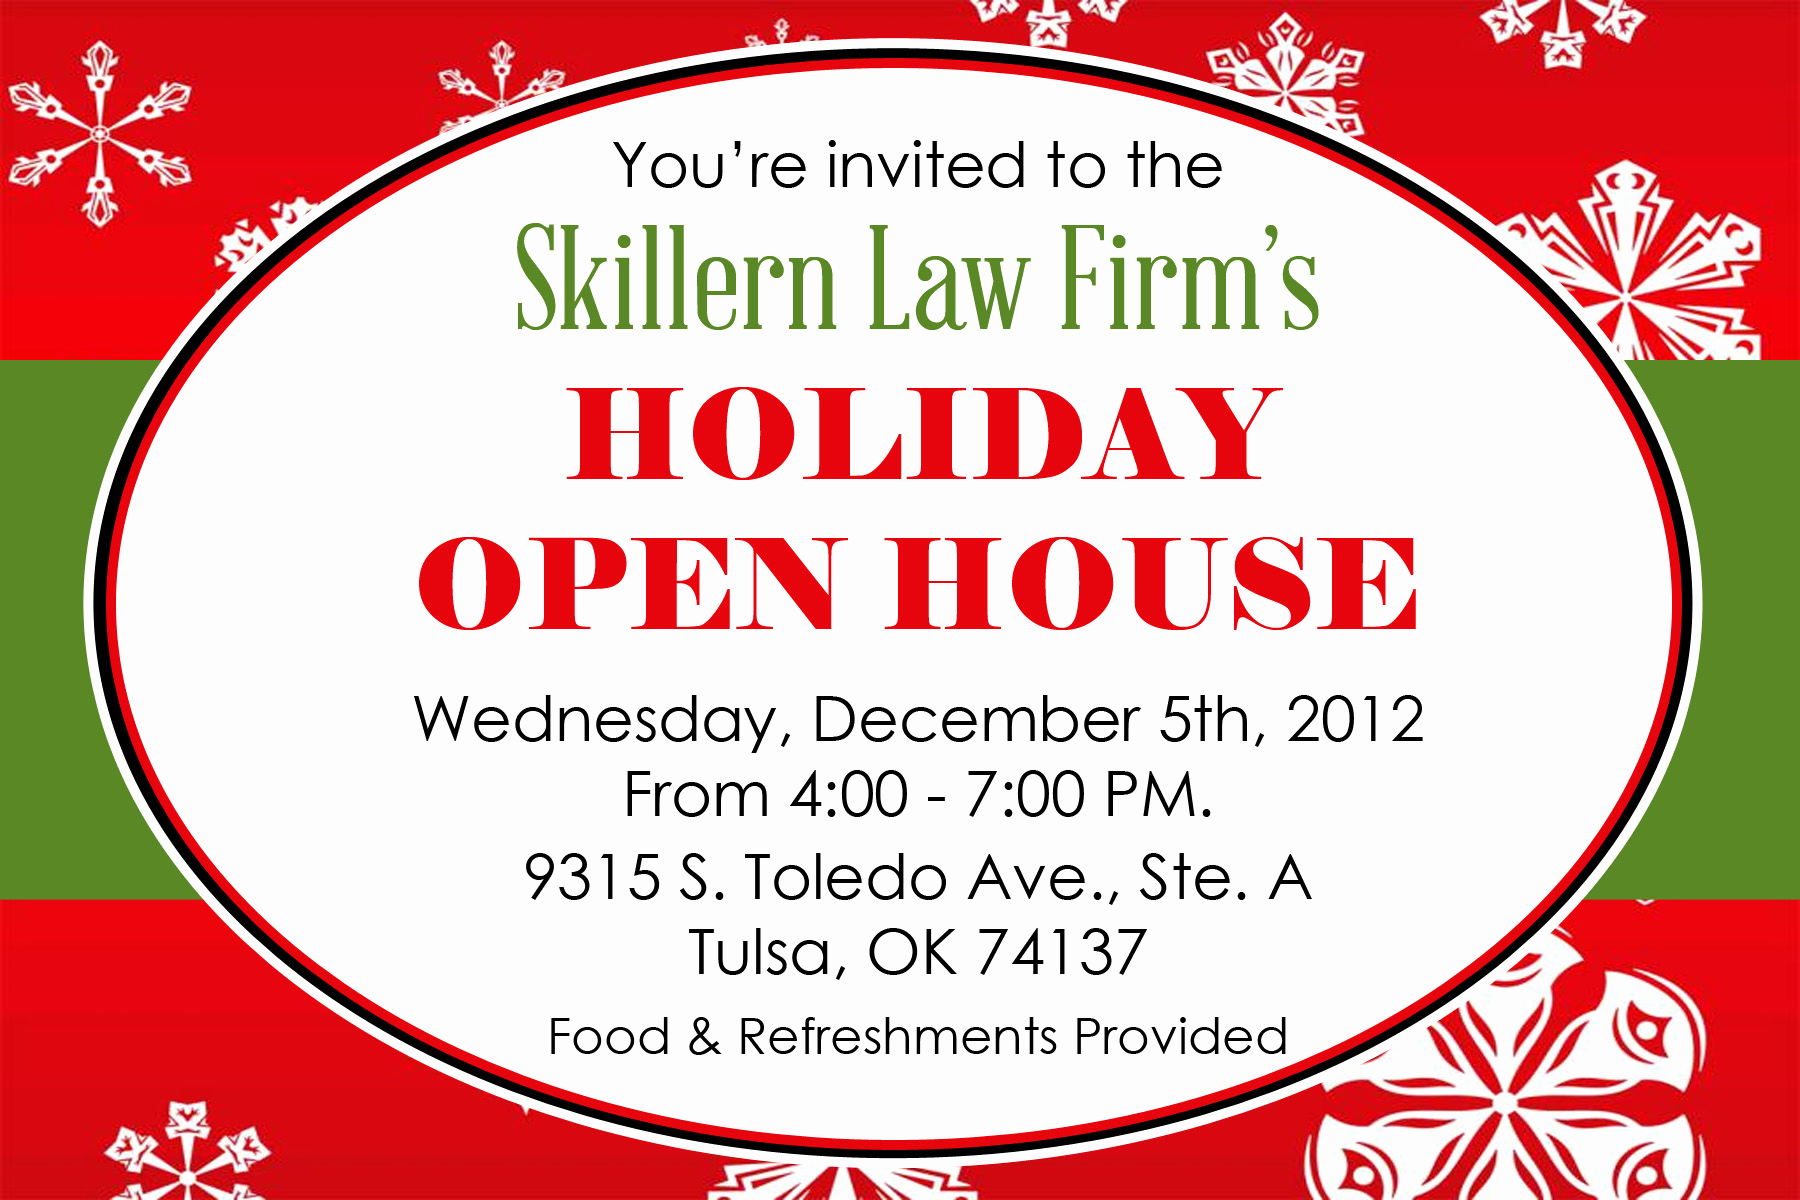 Mary Kay Open House Invitation New Holiday Open House Skillern Law Firm Pllc